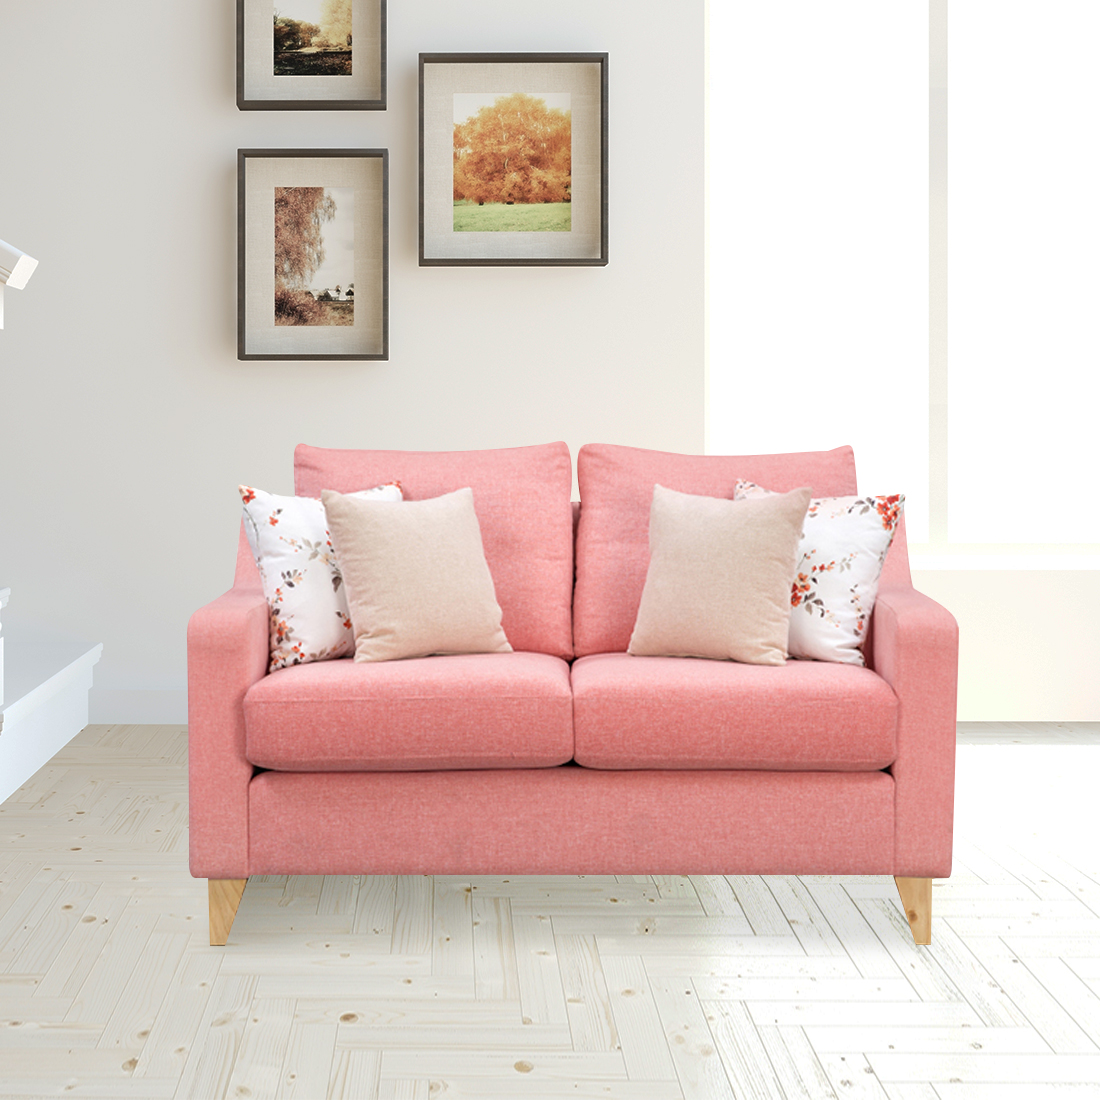 Pompeii Fabric Two Seater Sofa in Coral Colour by HomeTown